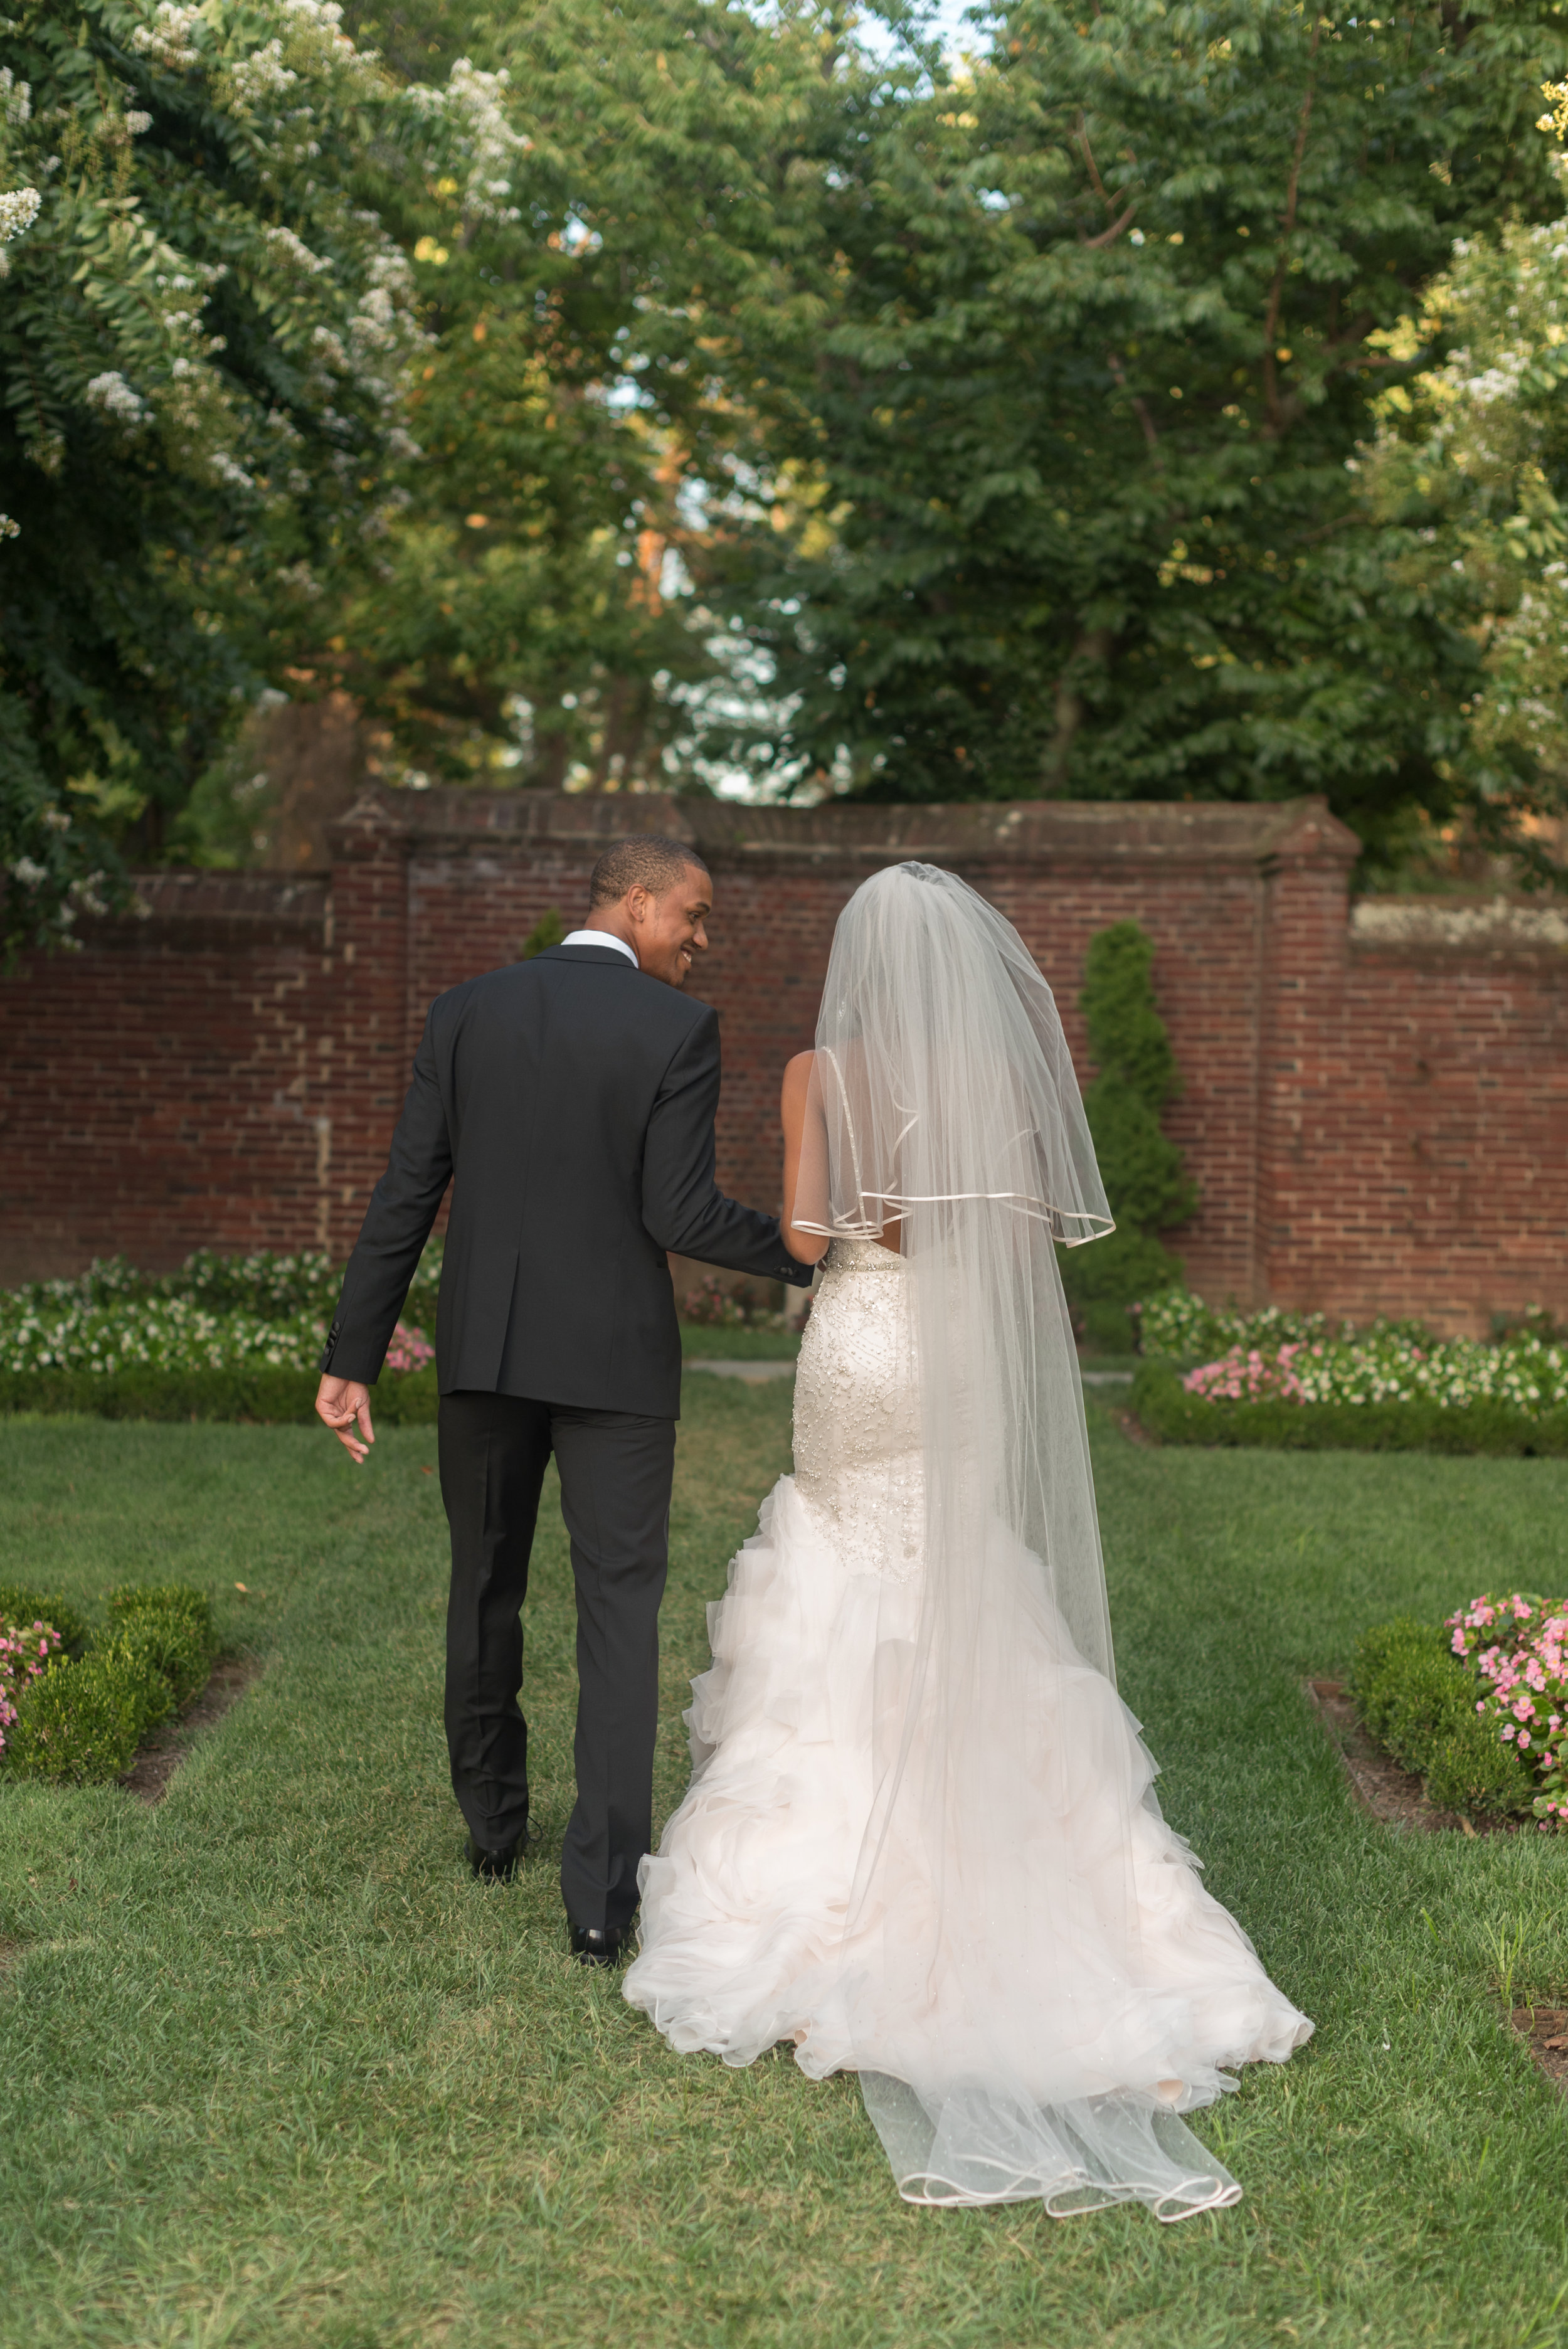 Photography: Rhea Whitney Photography | Planning: Sensational Soirees